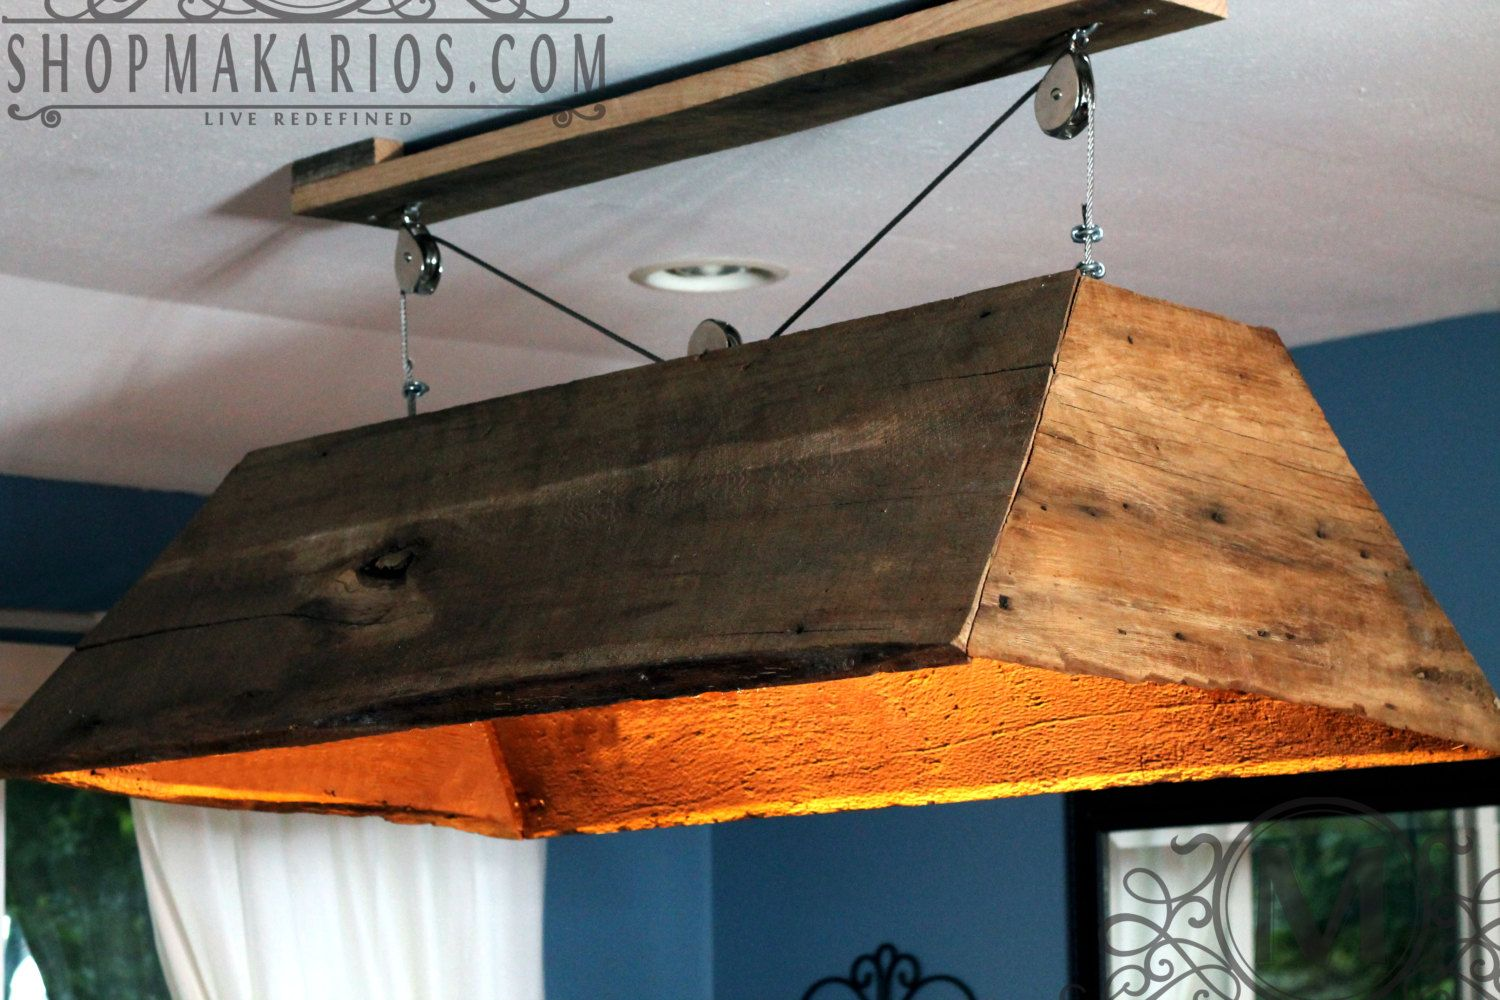 This Is A One Of Kind Hanging Light Fixture Made From 19th Century Barn Wood Description Etsy I Searched For On Bing Images